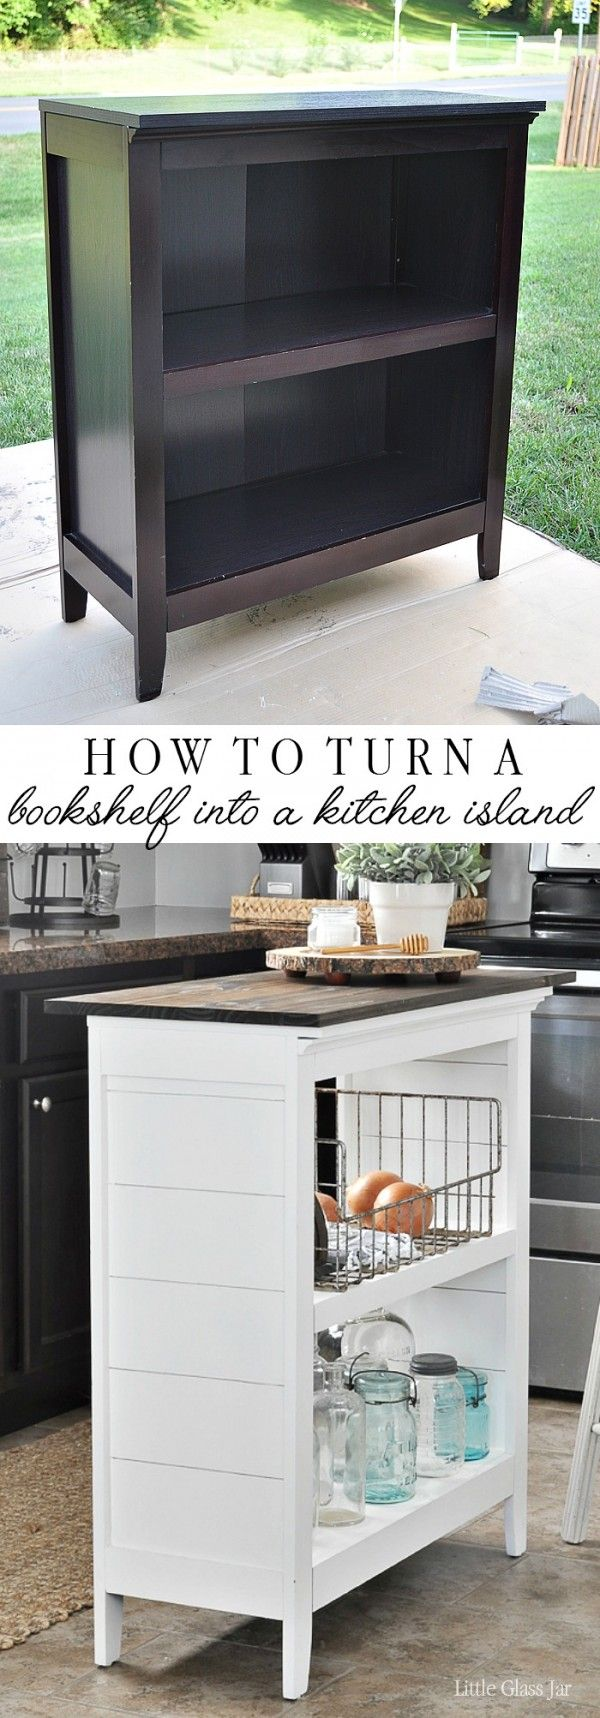 Superb Best 25+ Build Kitchen Island Ideas On Pinterest | Build Kitchen Island  Diy, Diy Kitchen Island And Kitchen Island Diy Rustic